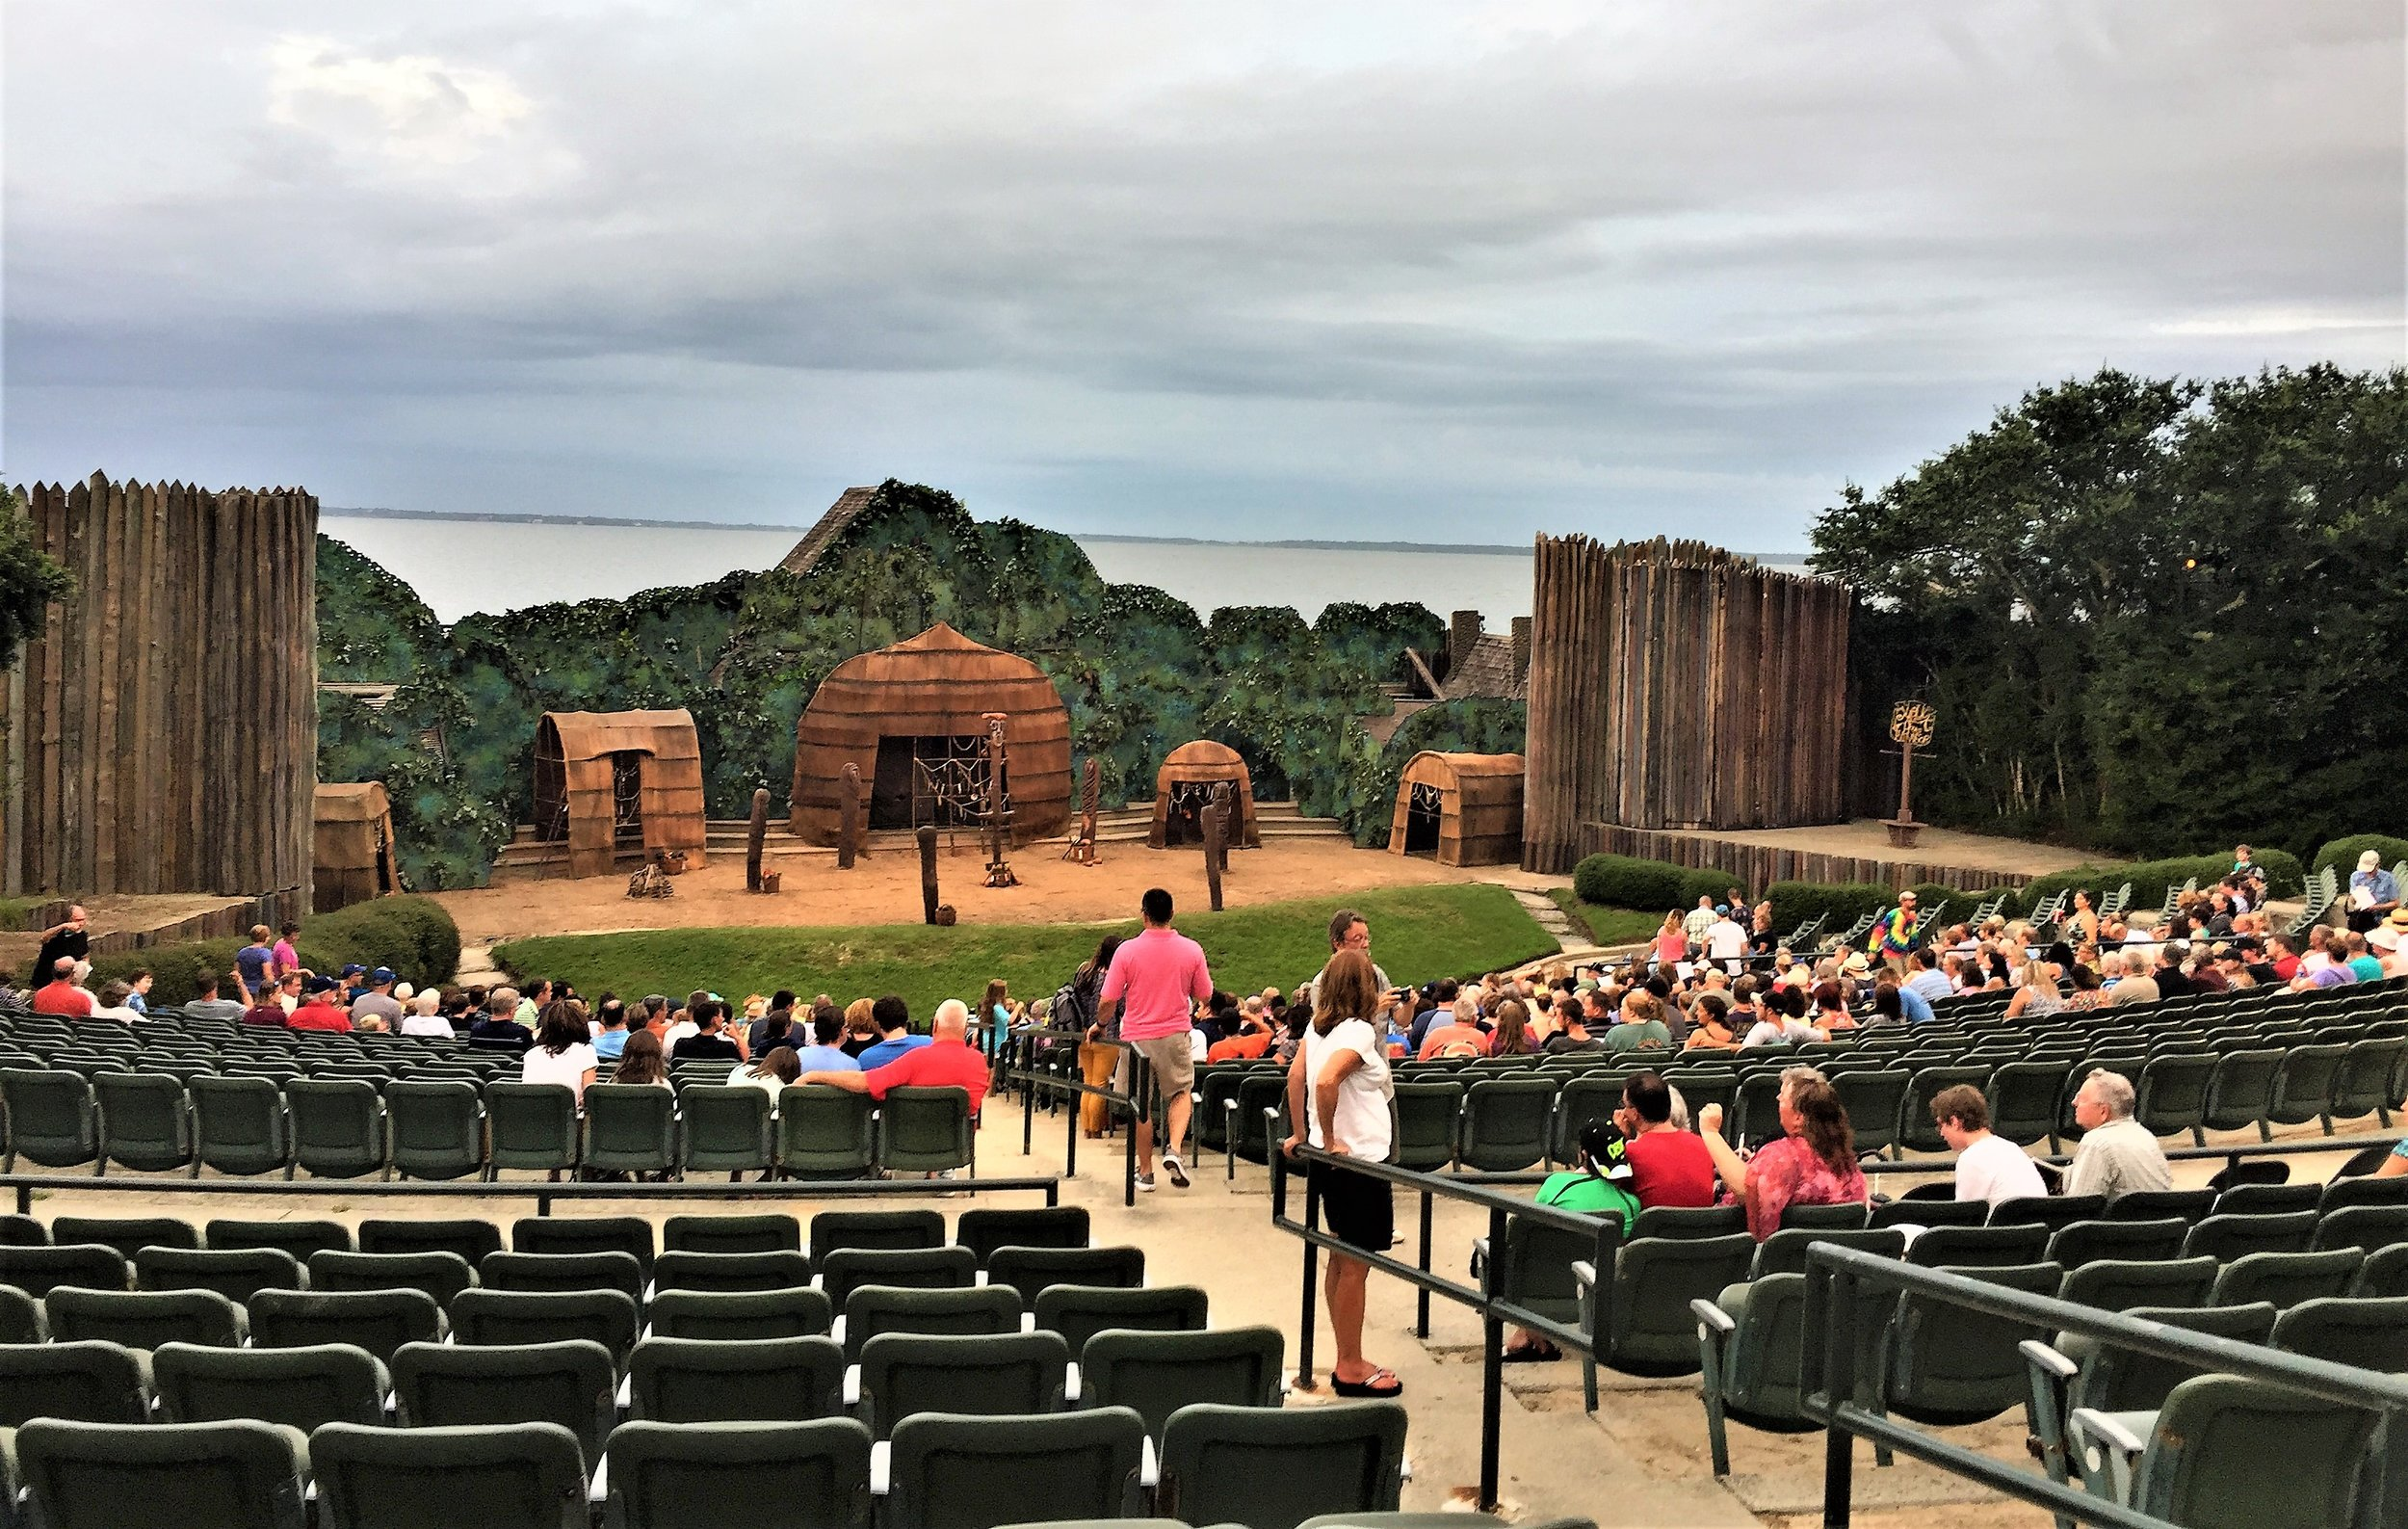 The Lost Colony at Fort Raleigh